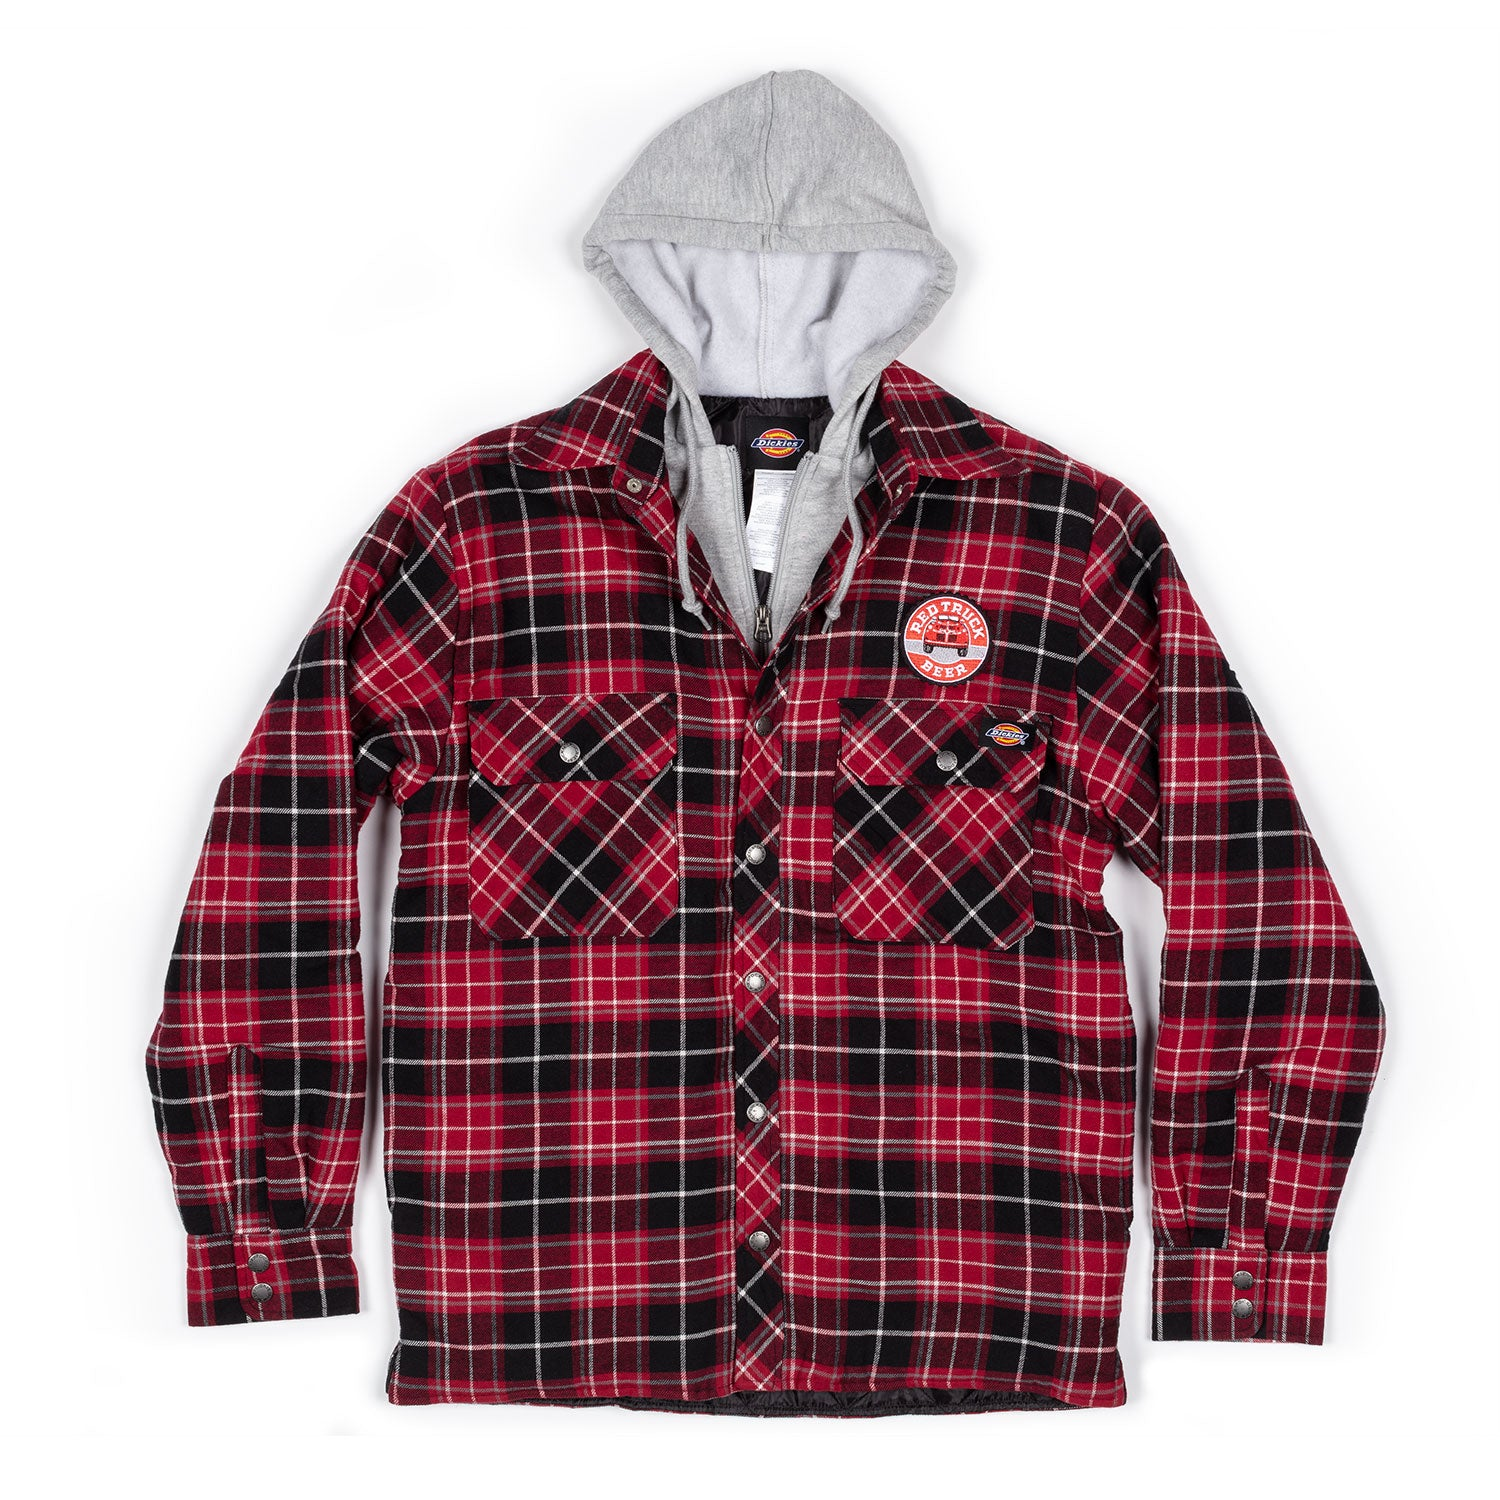 RED TRUCK PLAID JACKET